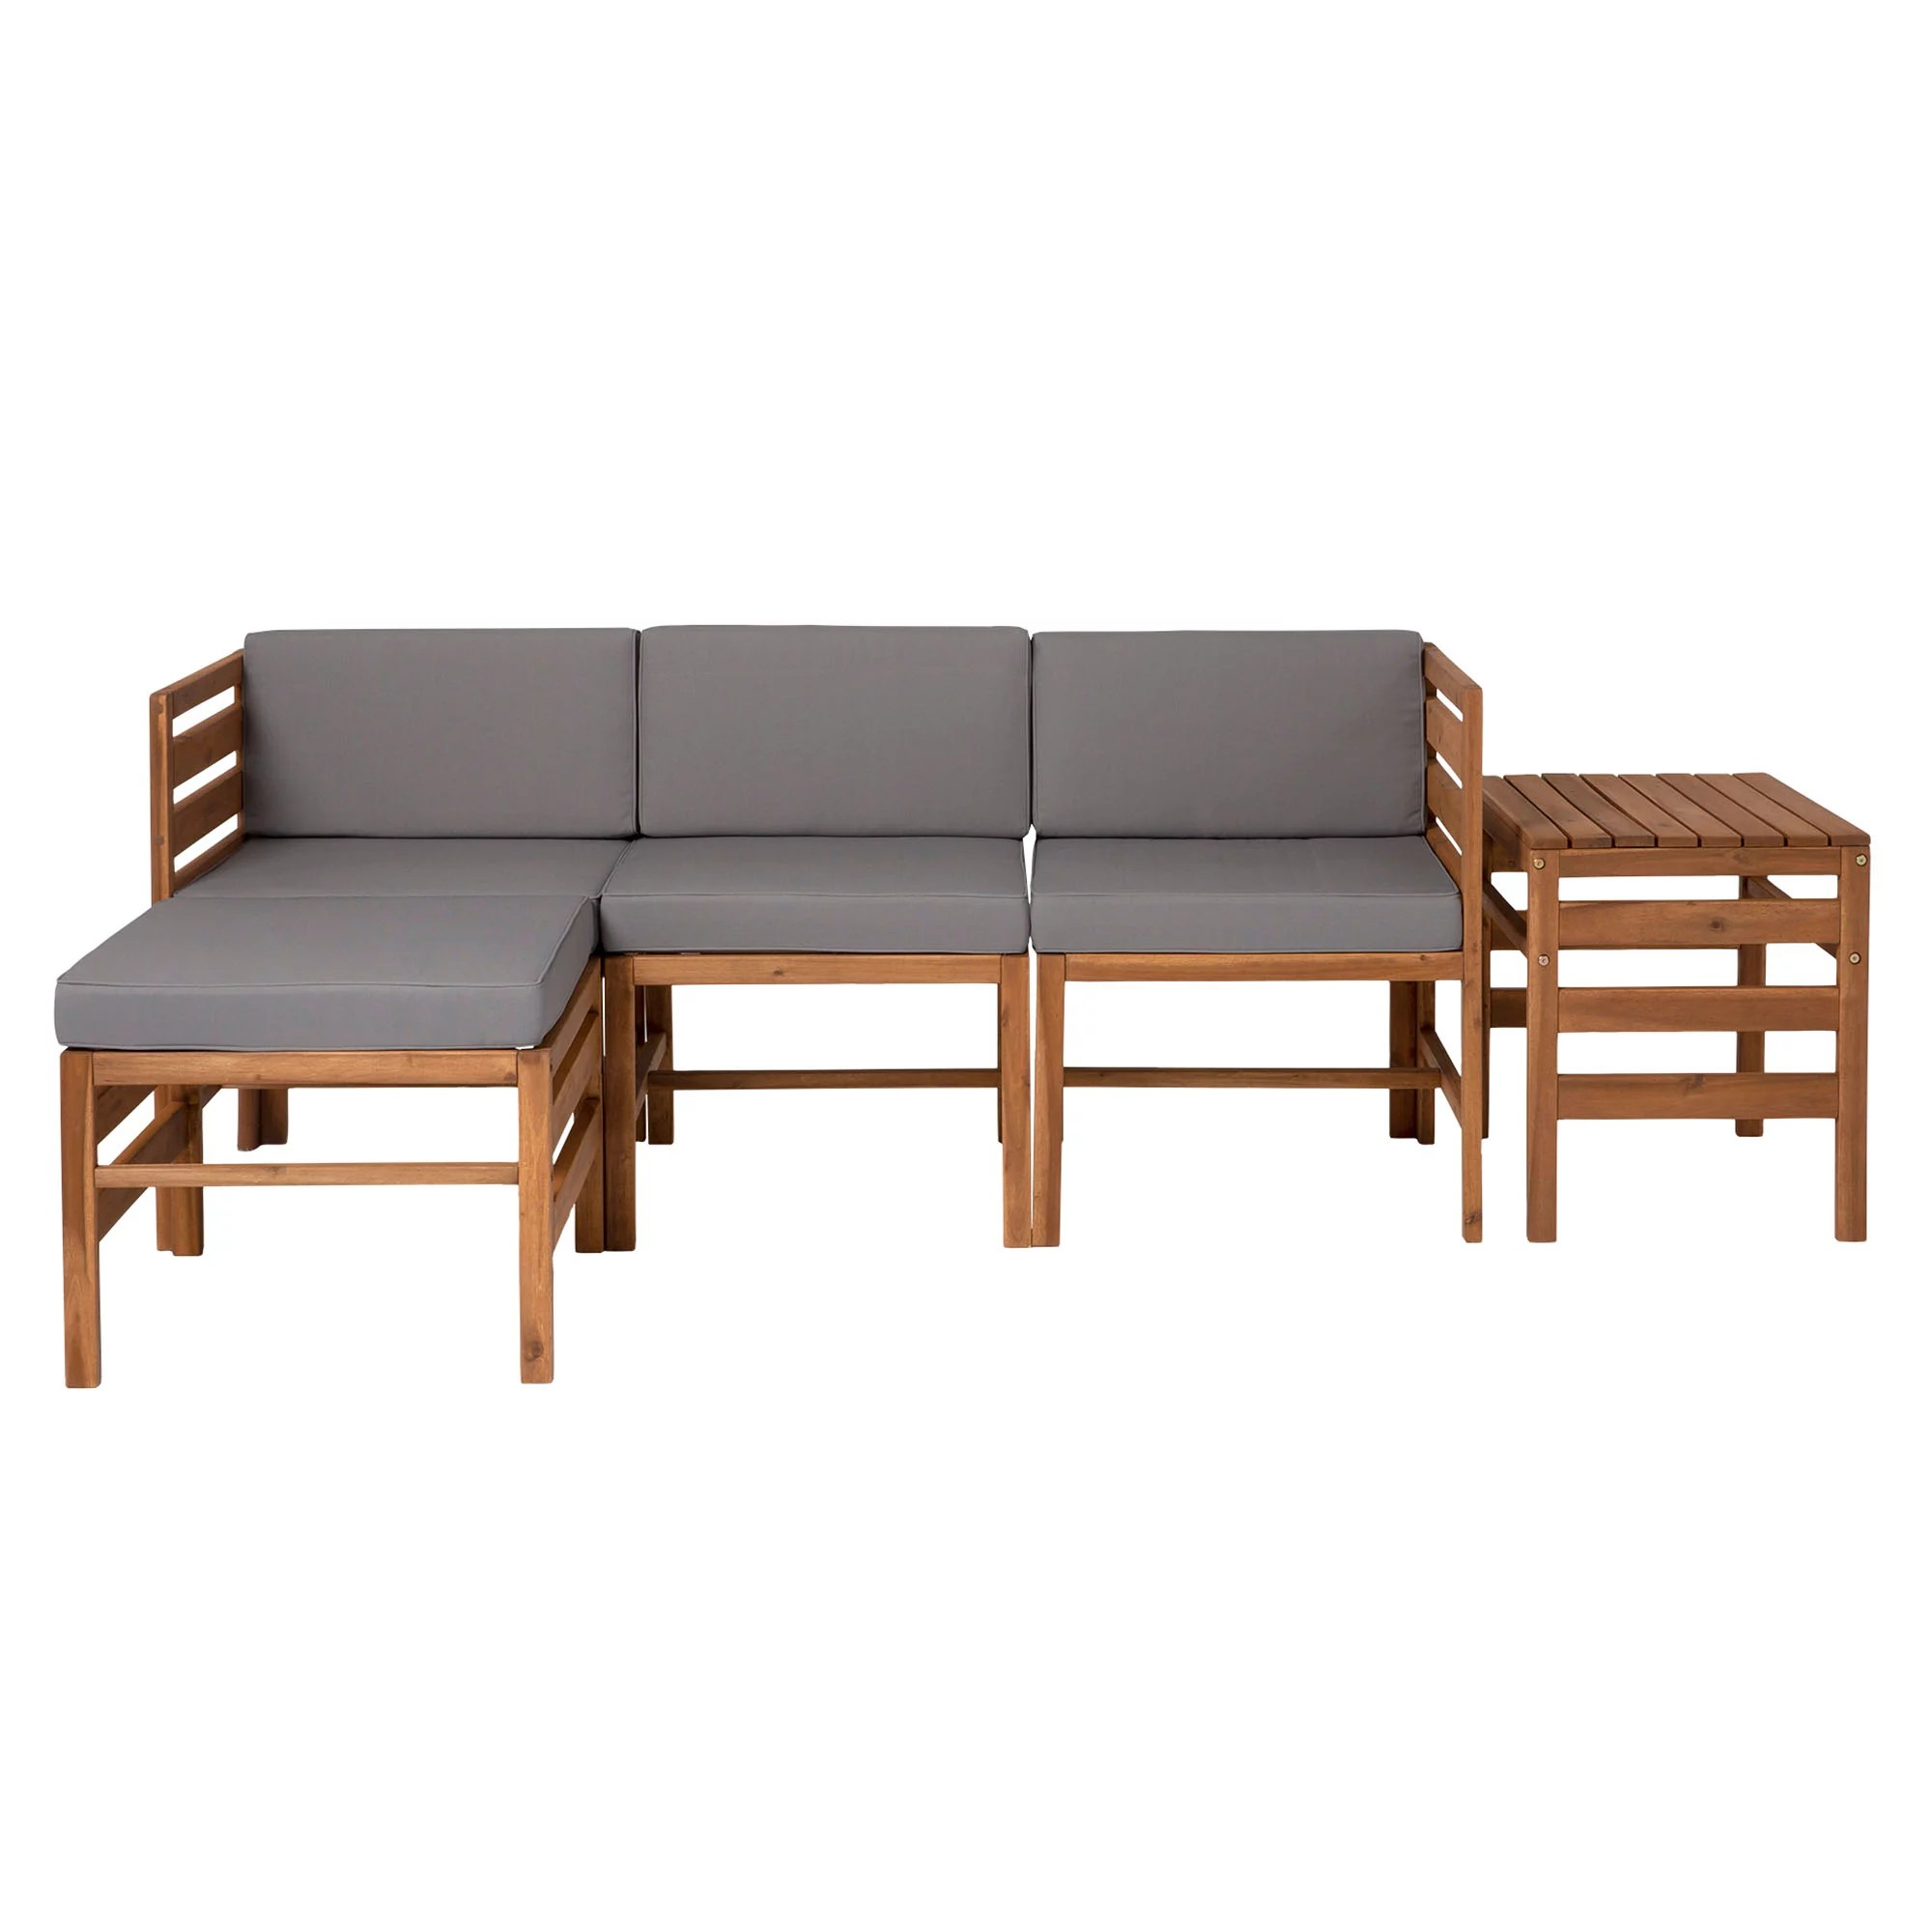 w trends 5 pc patio acacia chat set